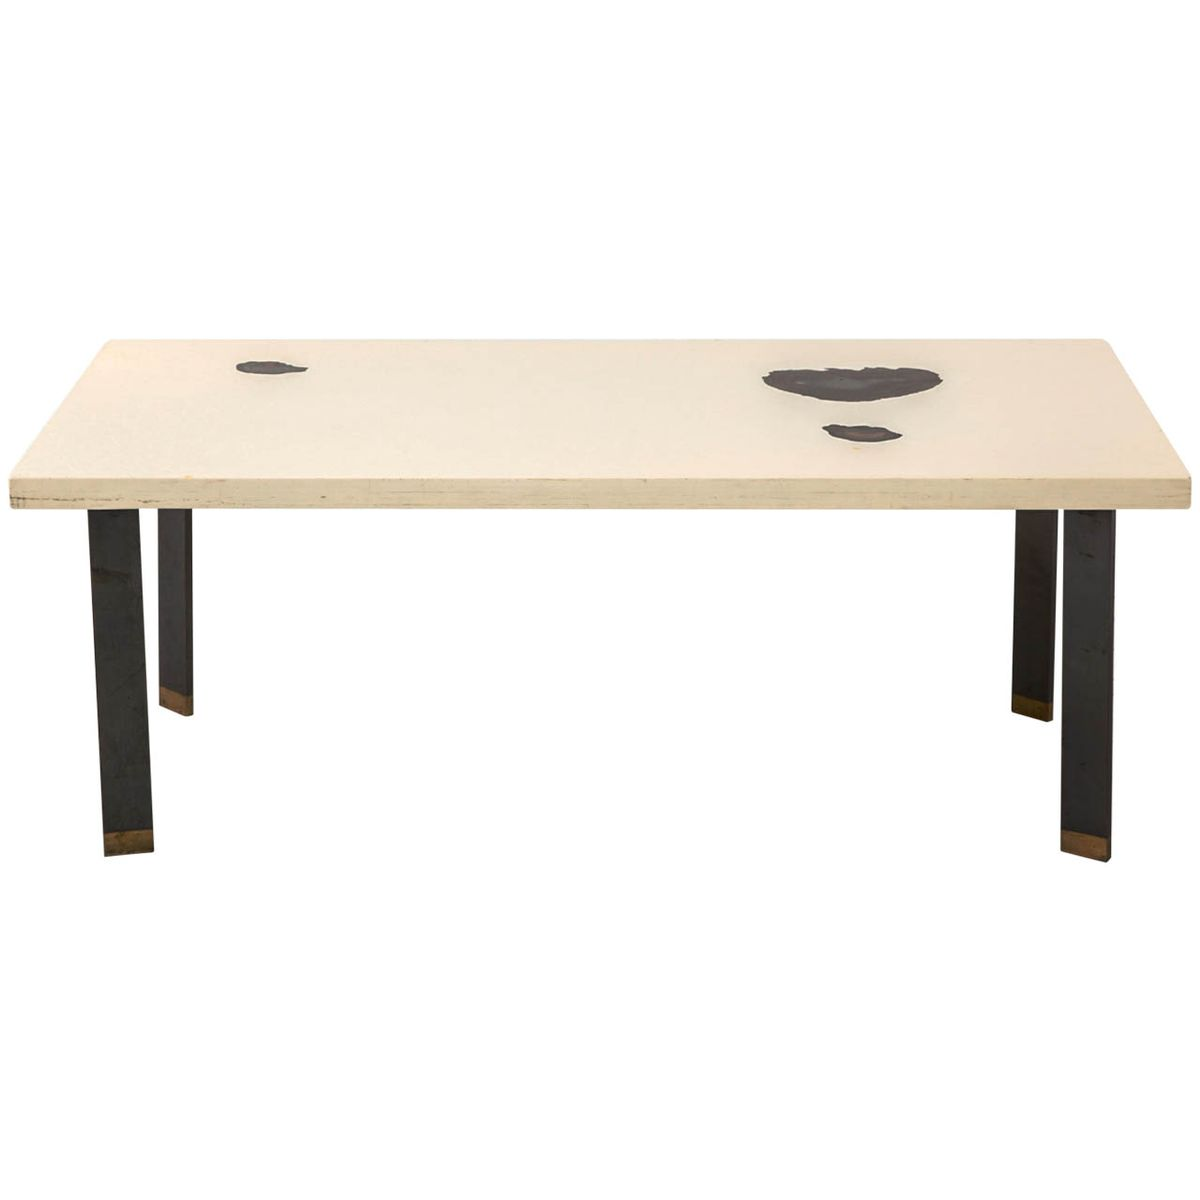 Cream Resin Coffee Table By Philippe Barbier 1959 For Sale At Pamono